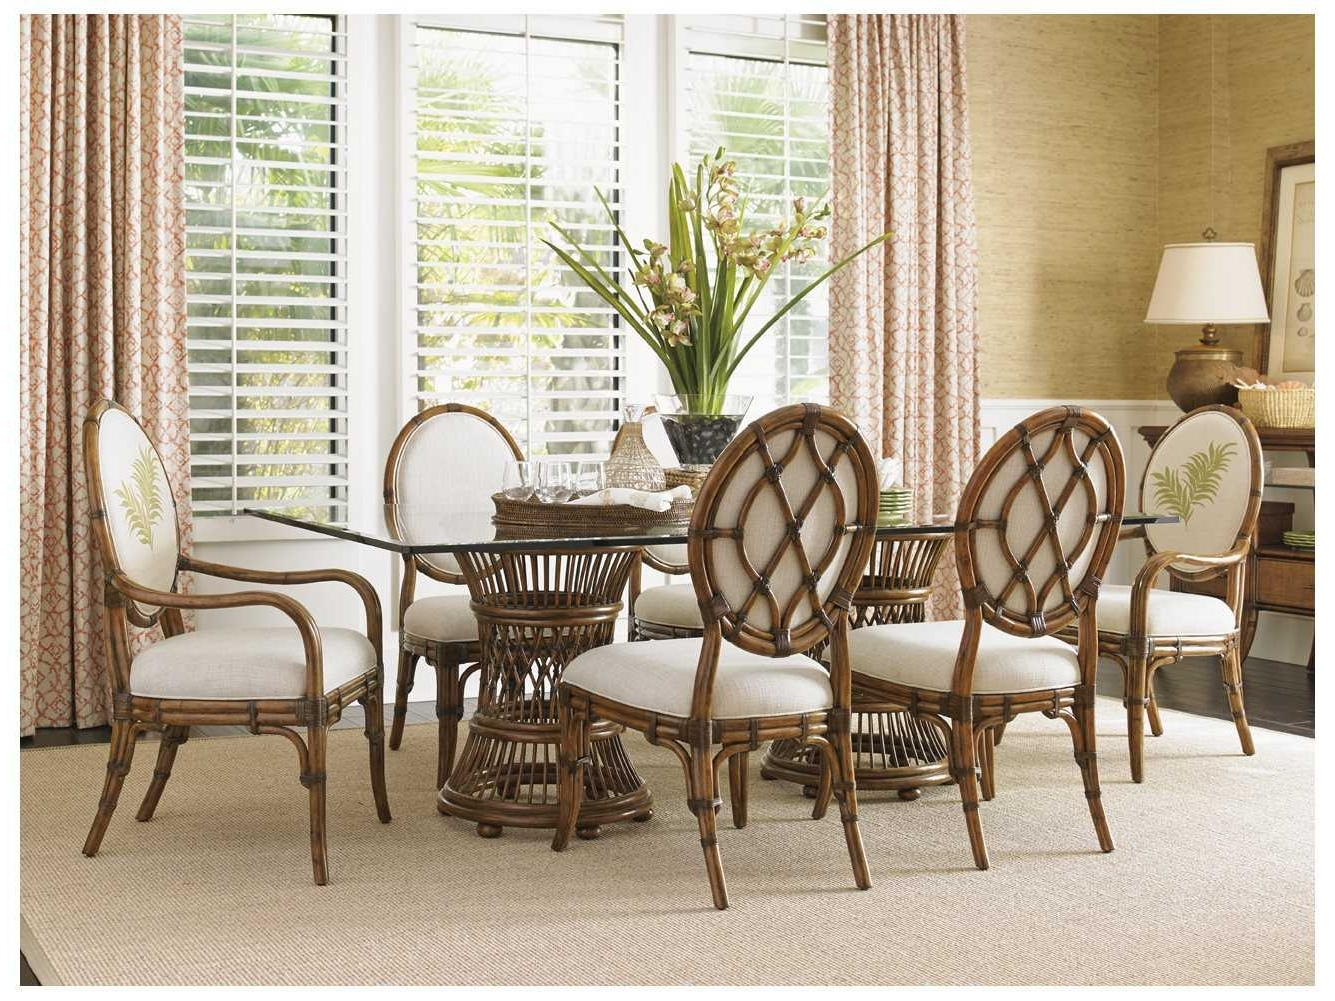 Bali Dining Sets With Regard To Most Popular Tommy Bahama Bali Hai Dining Set (Gallery 5 of 25)